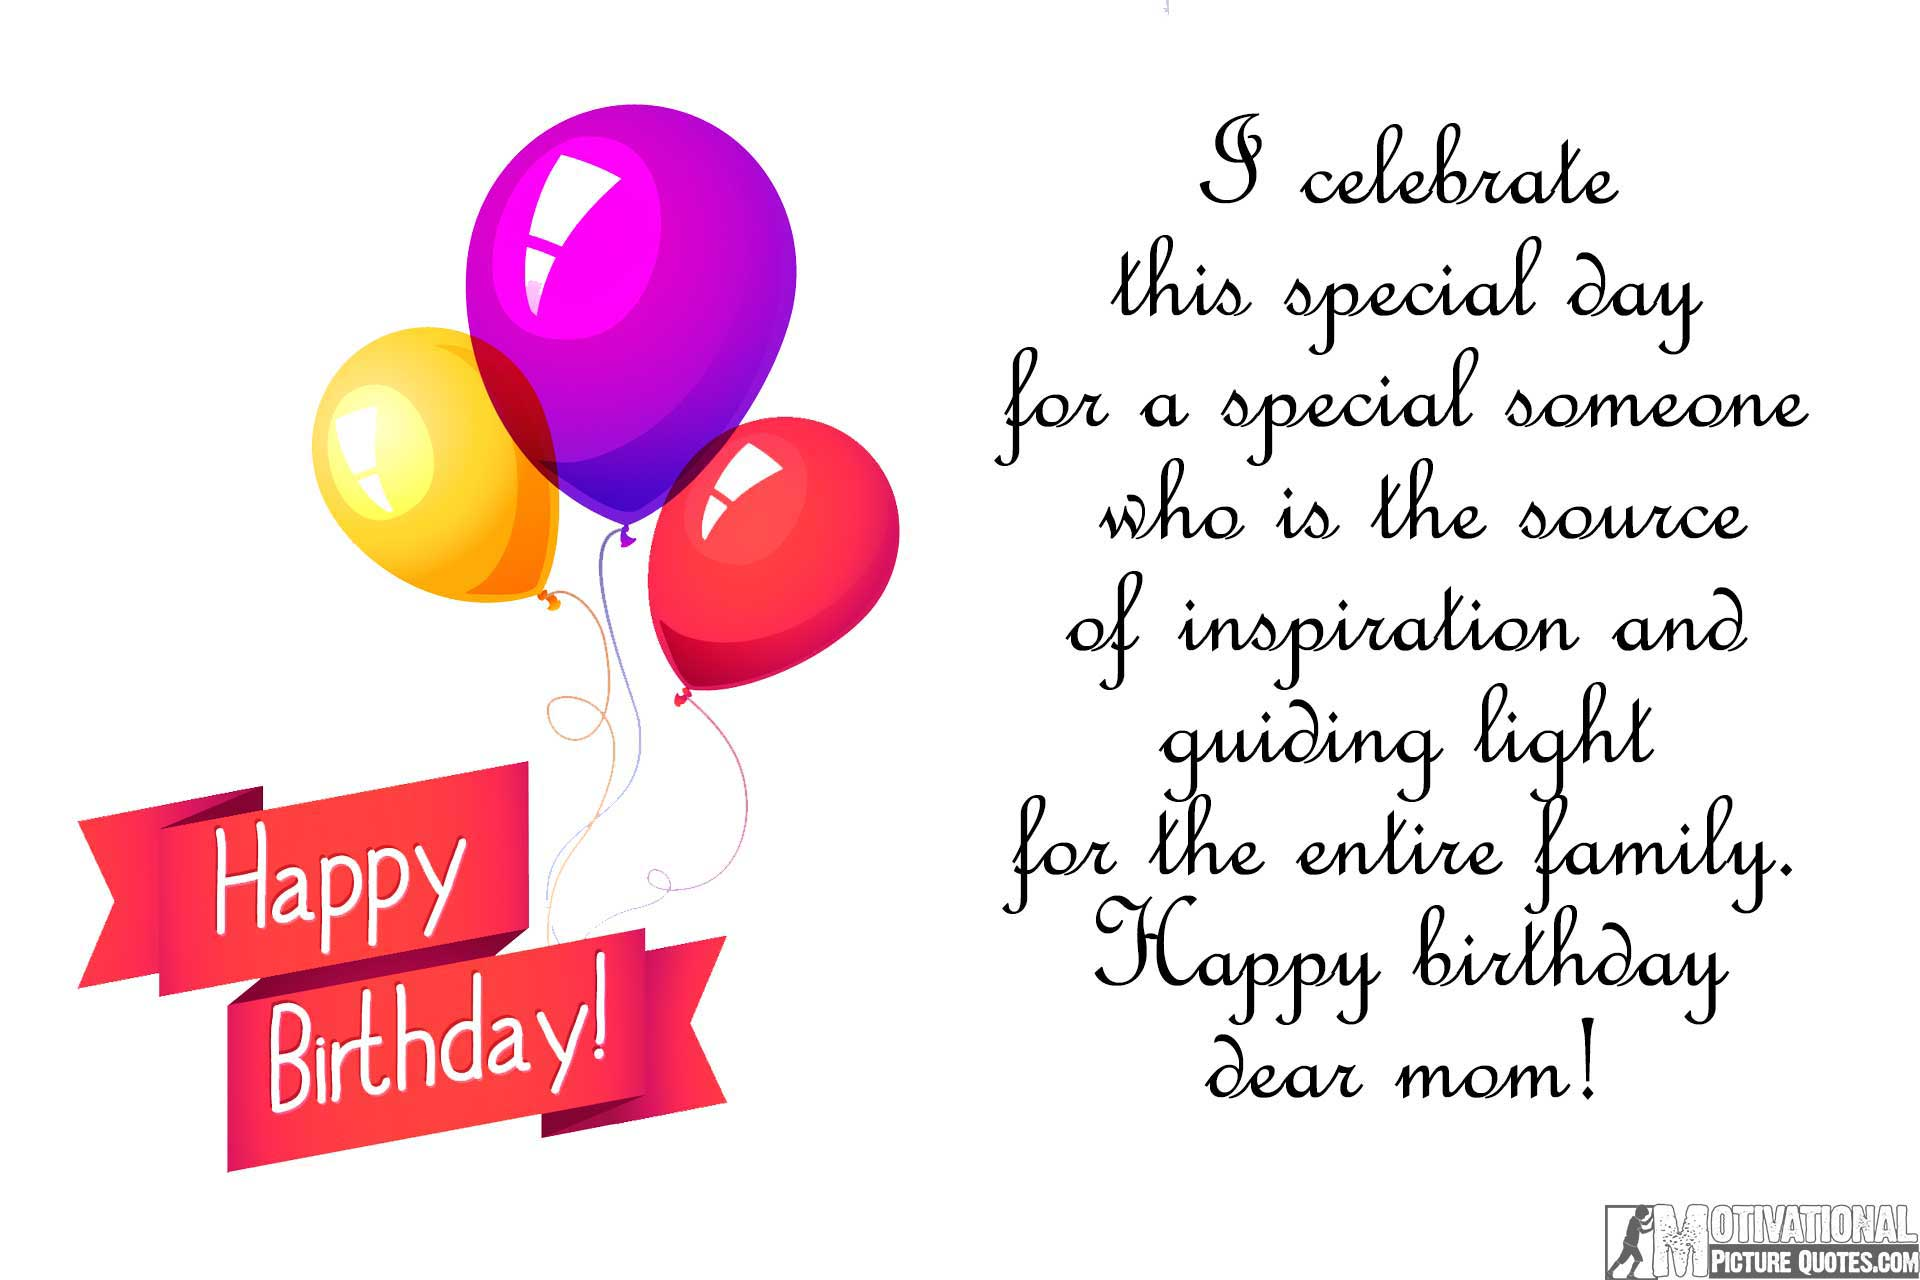 Celebration Of Life Quotes Death 35 Inspirational Birthday Quotes Images  Insbright